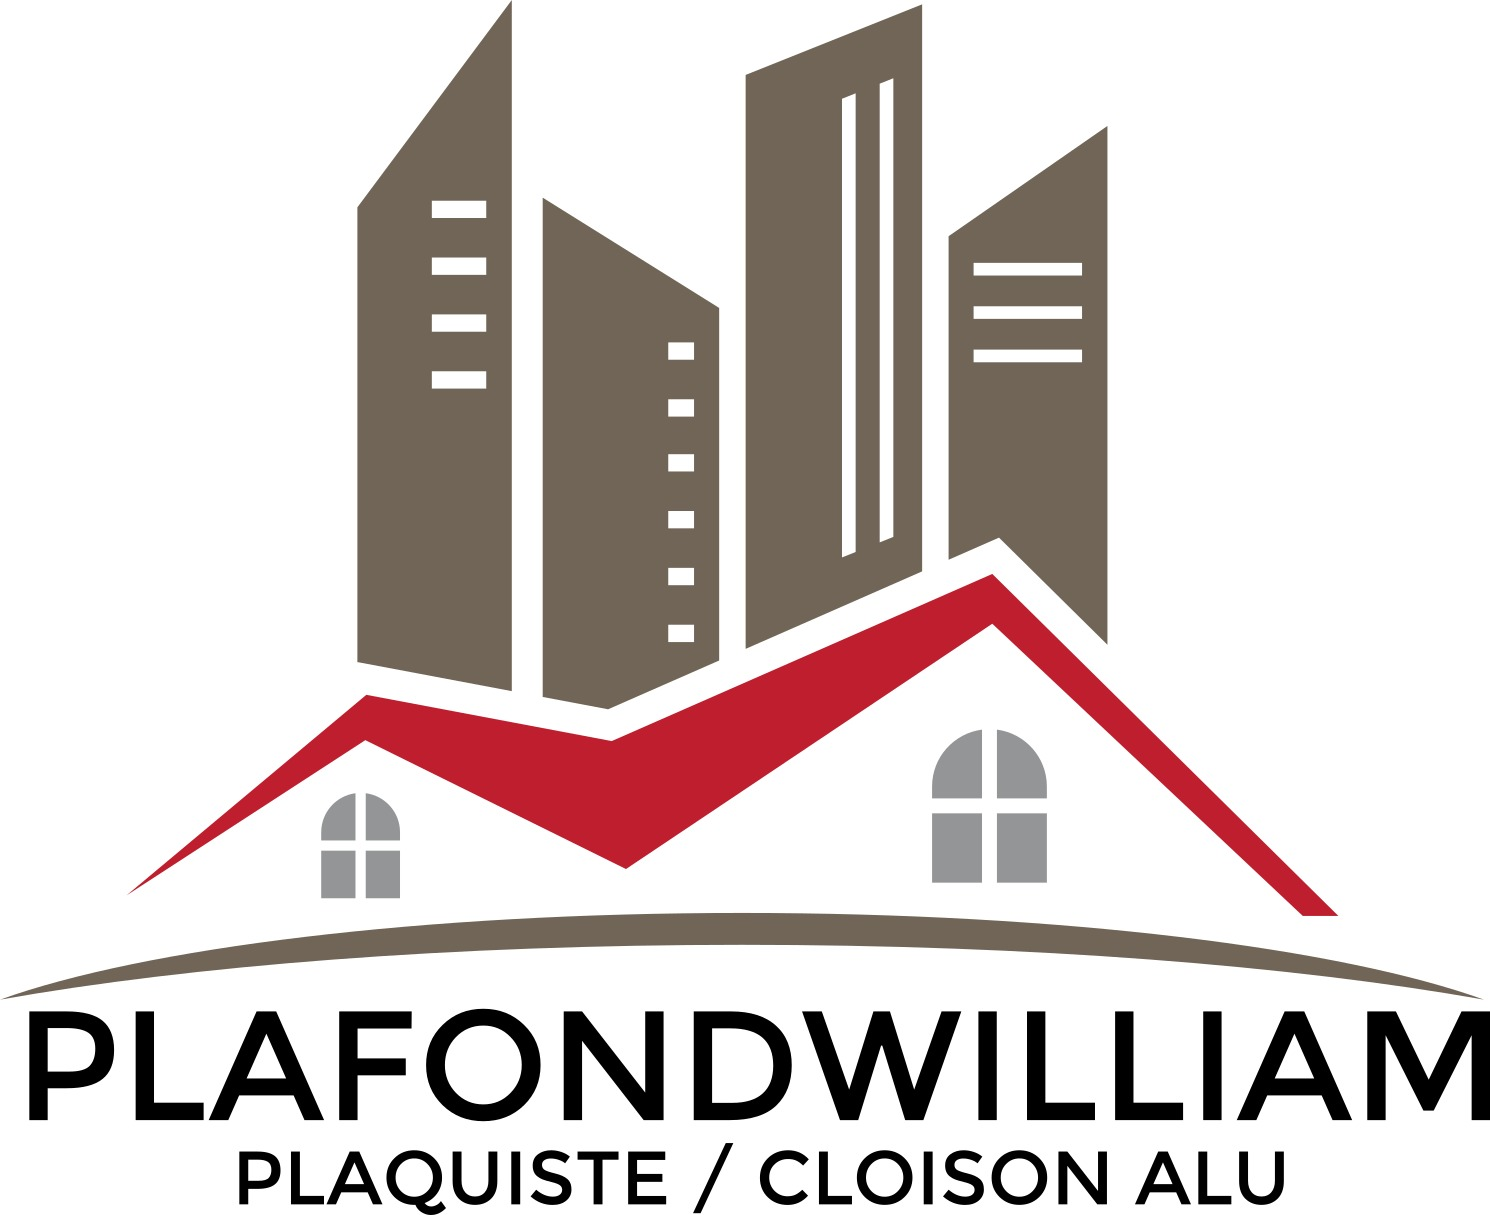 PLAFONDWILLIAM